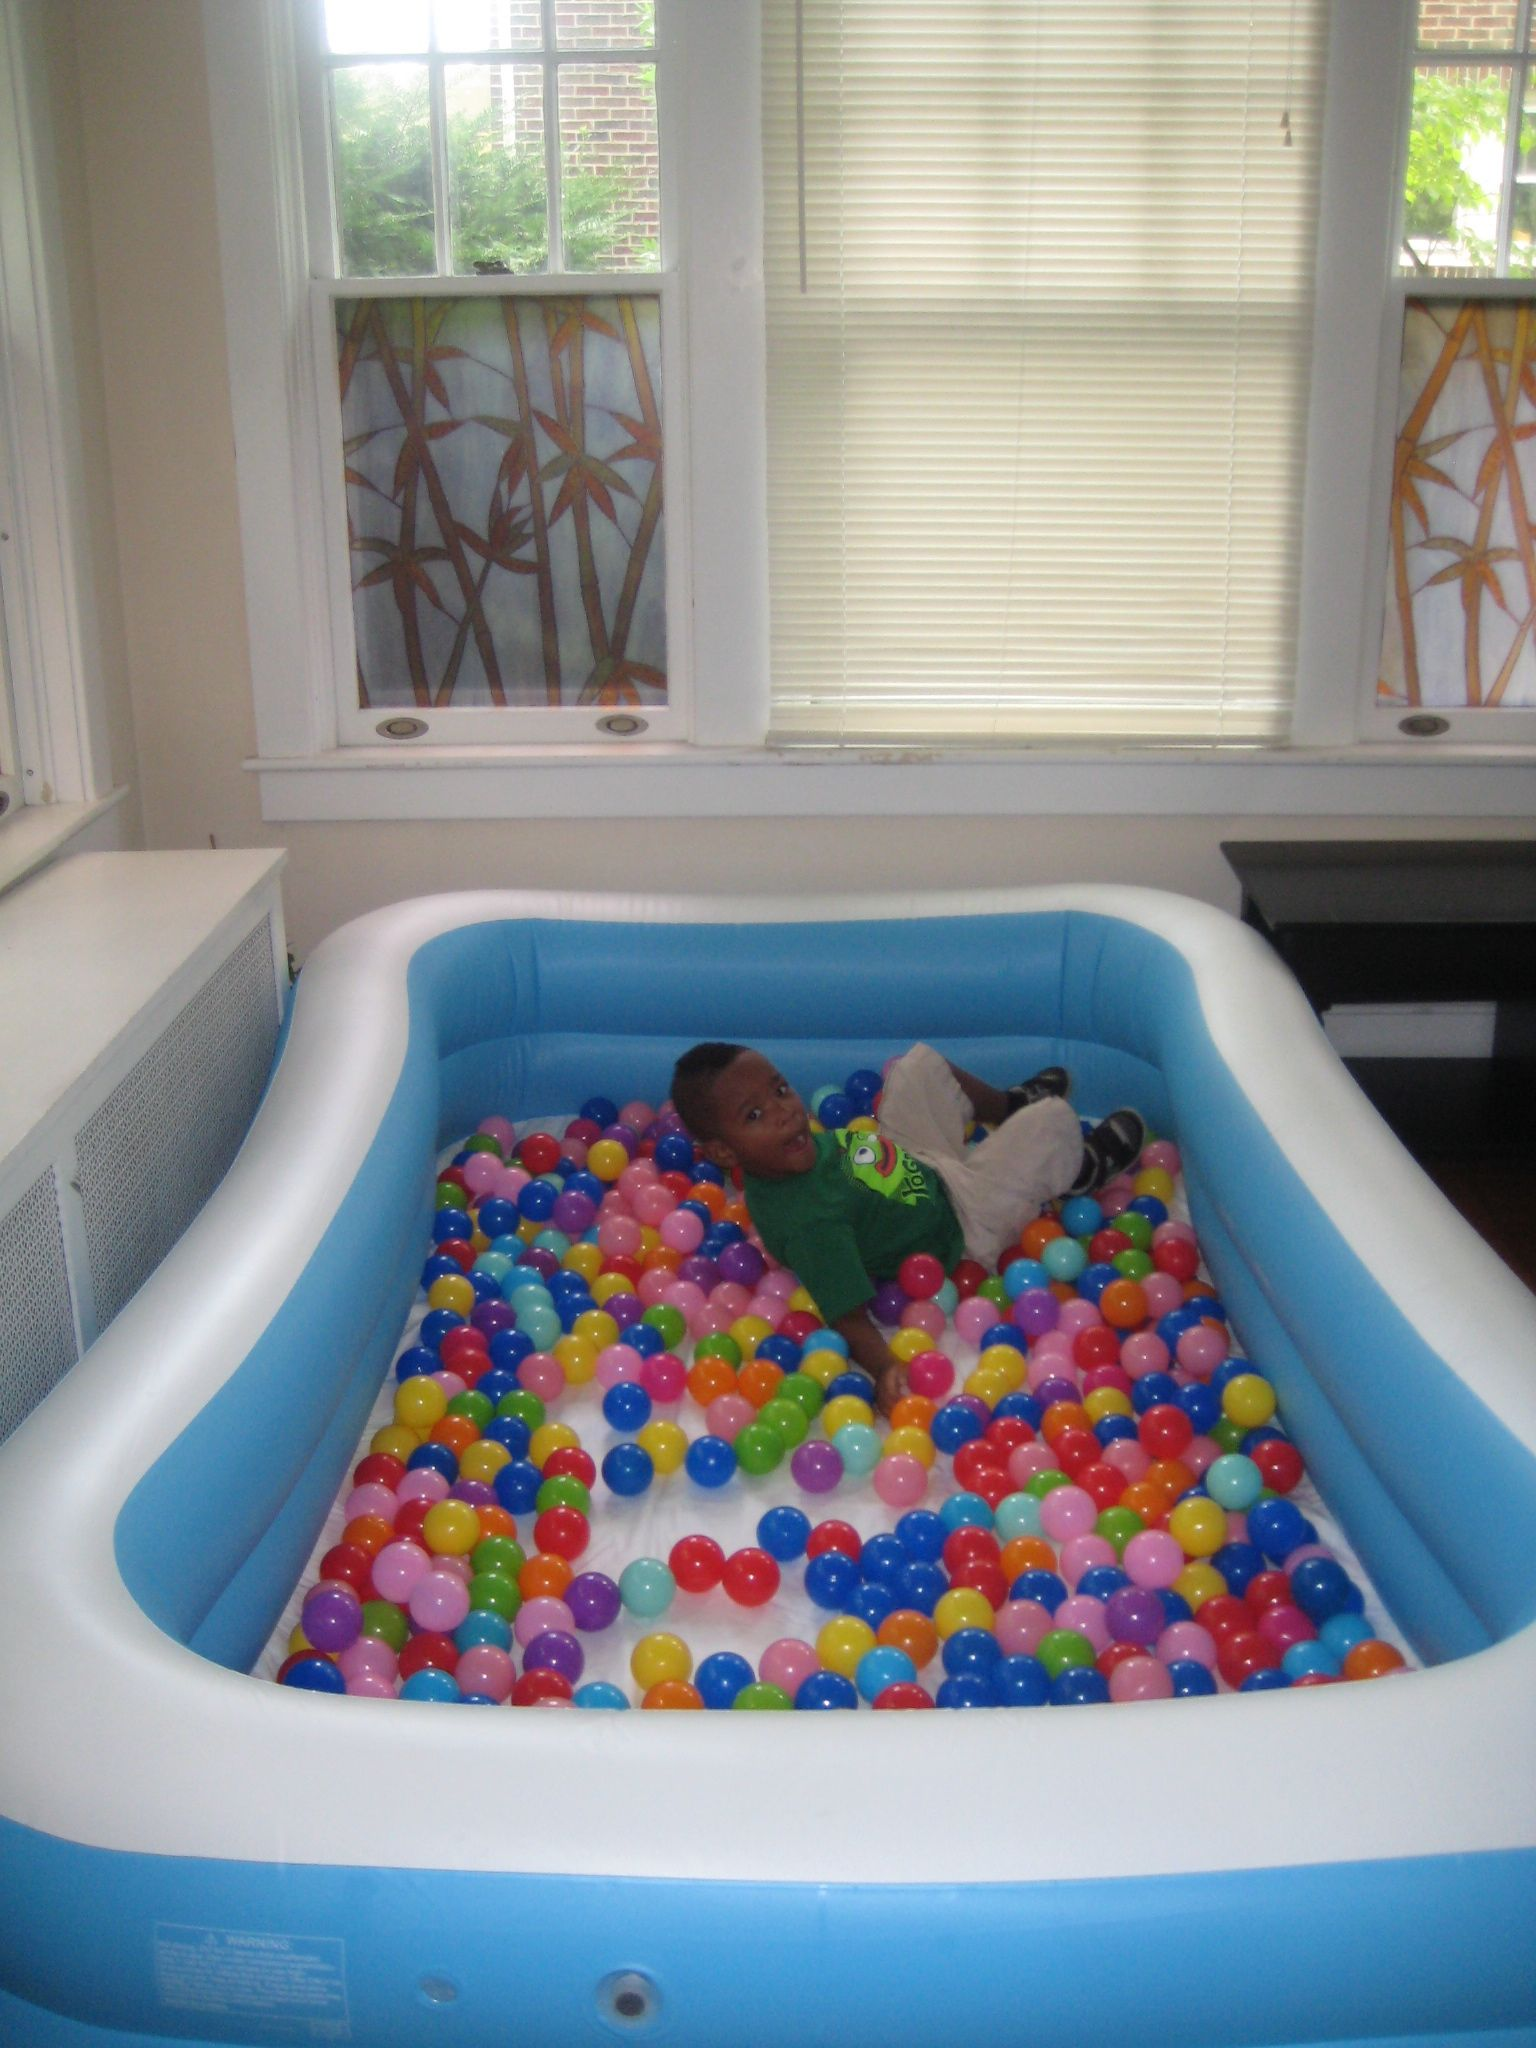 Pin On Indoors: Indoor Ball Pit!